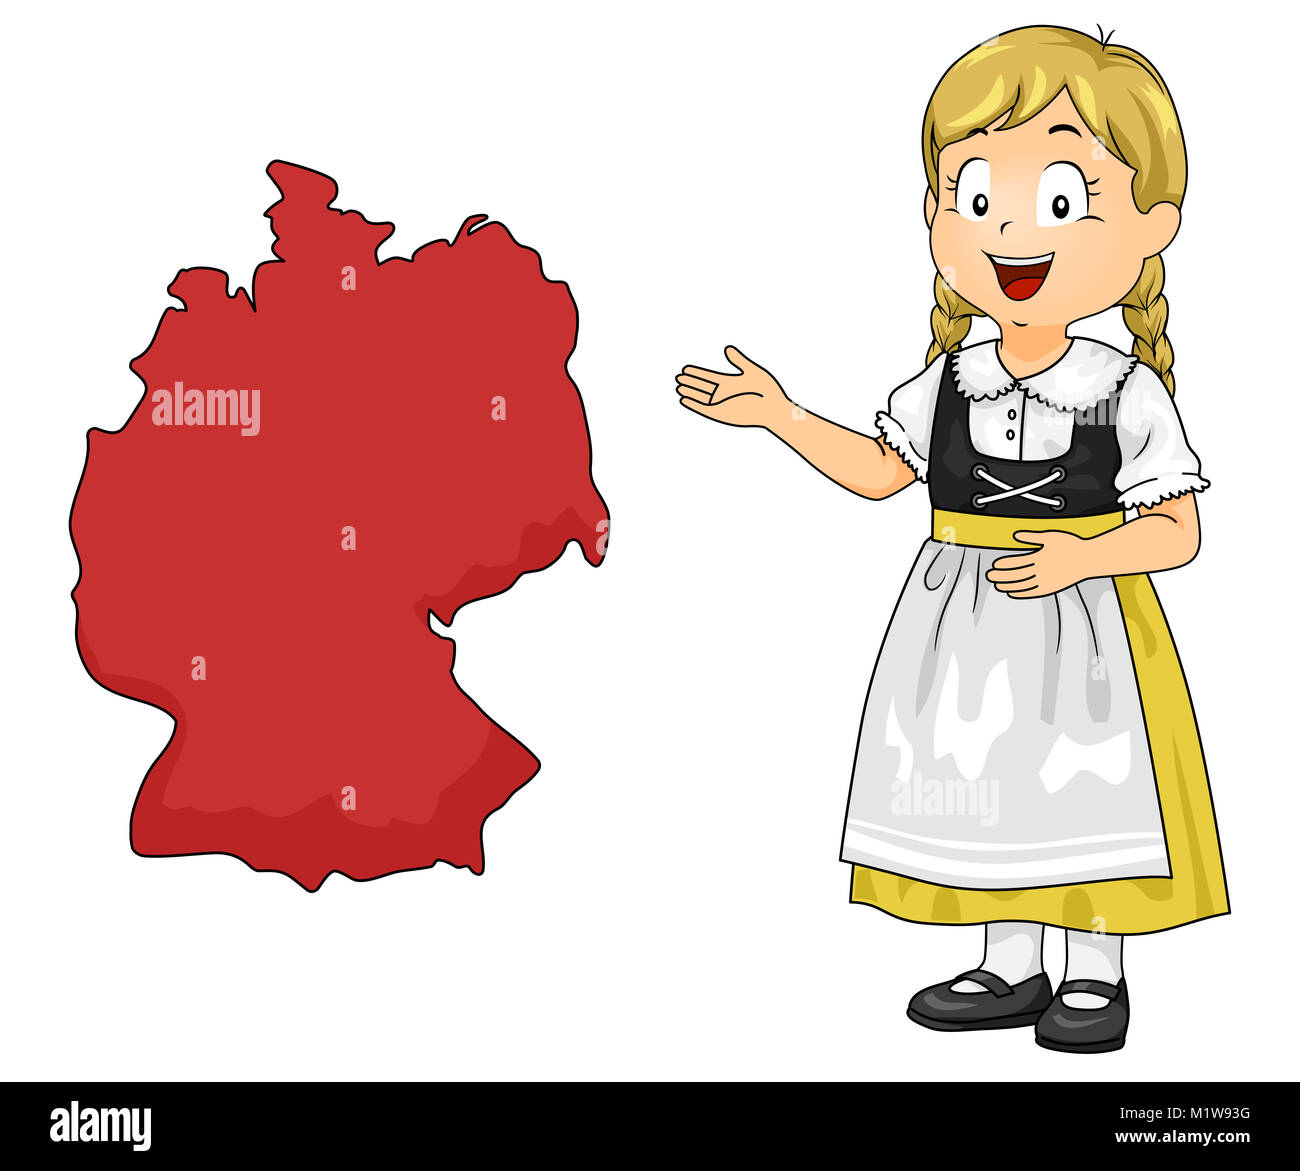 Cartoon Map Of Germany.Illustration Of A Kid Girl Wearing German National Costume